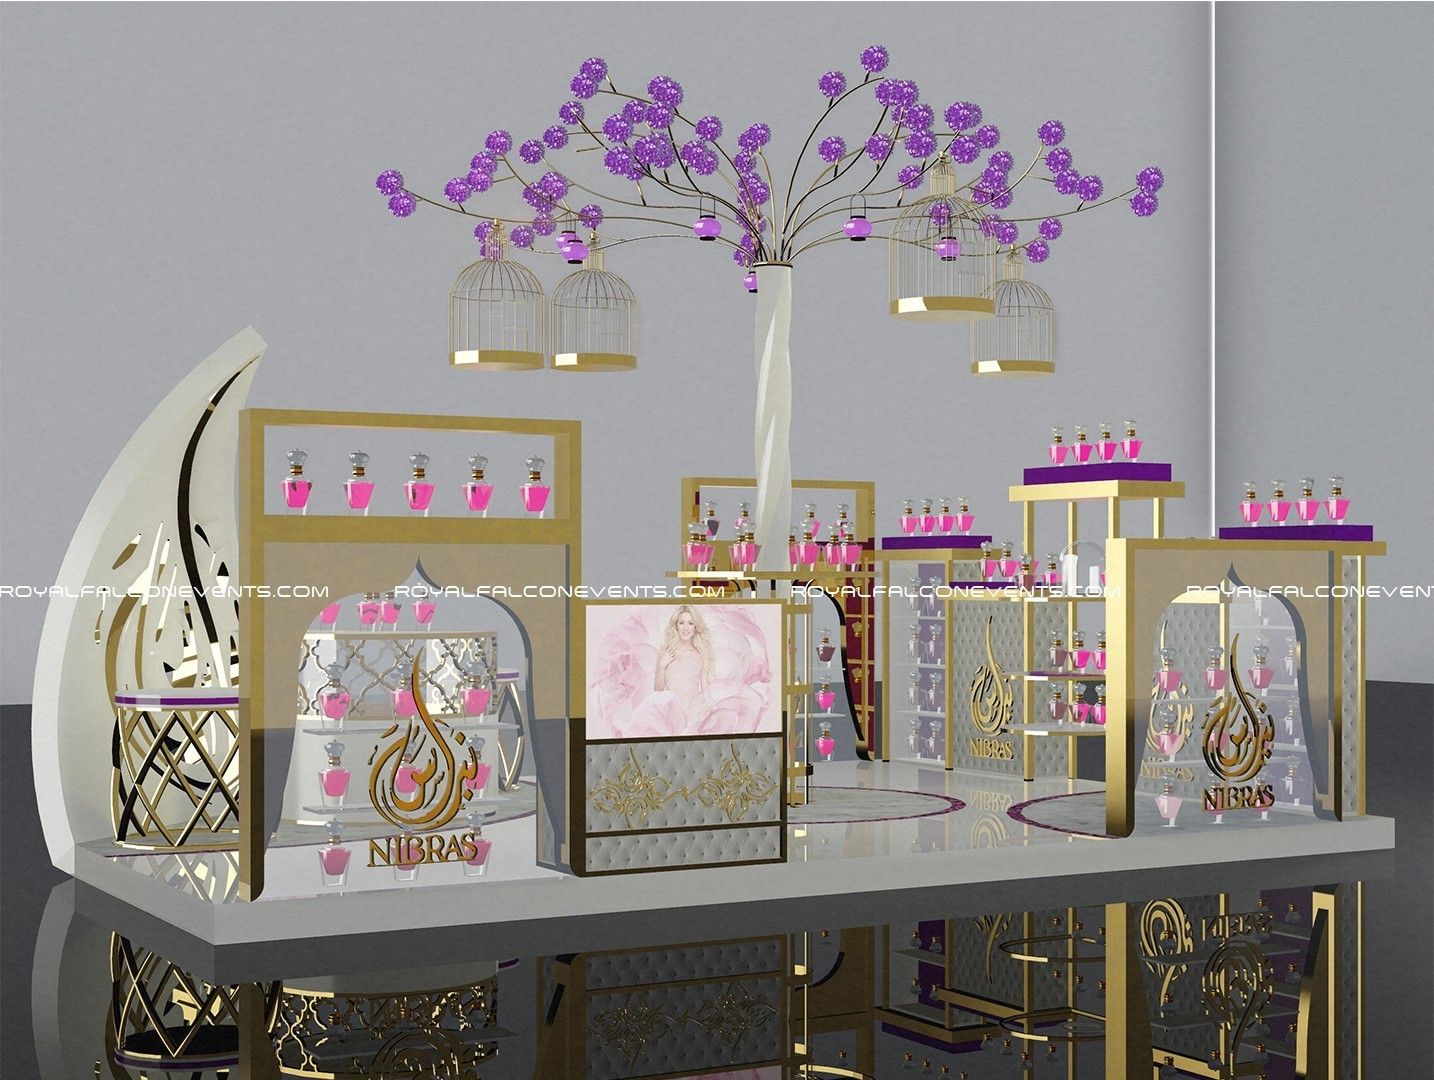 Exhibition Stand Builders In Abu Dhabi : Exhibition stand builders in dubai royal falcon events